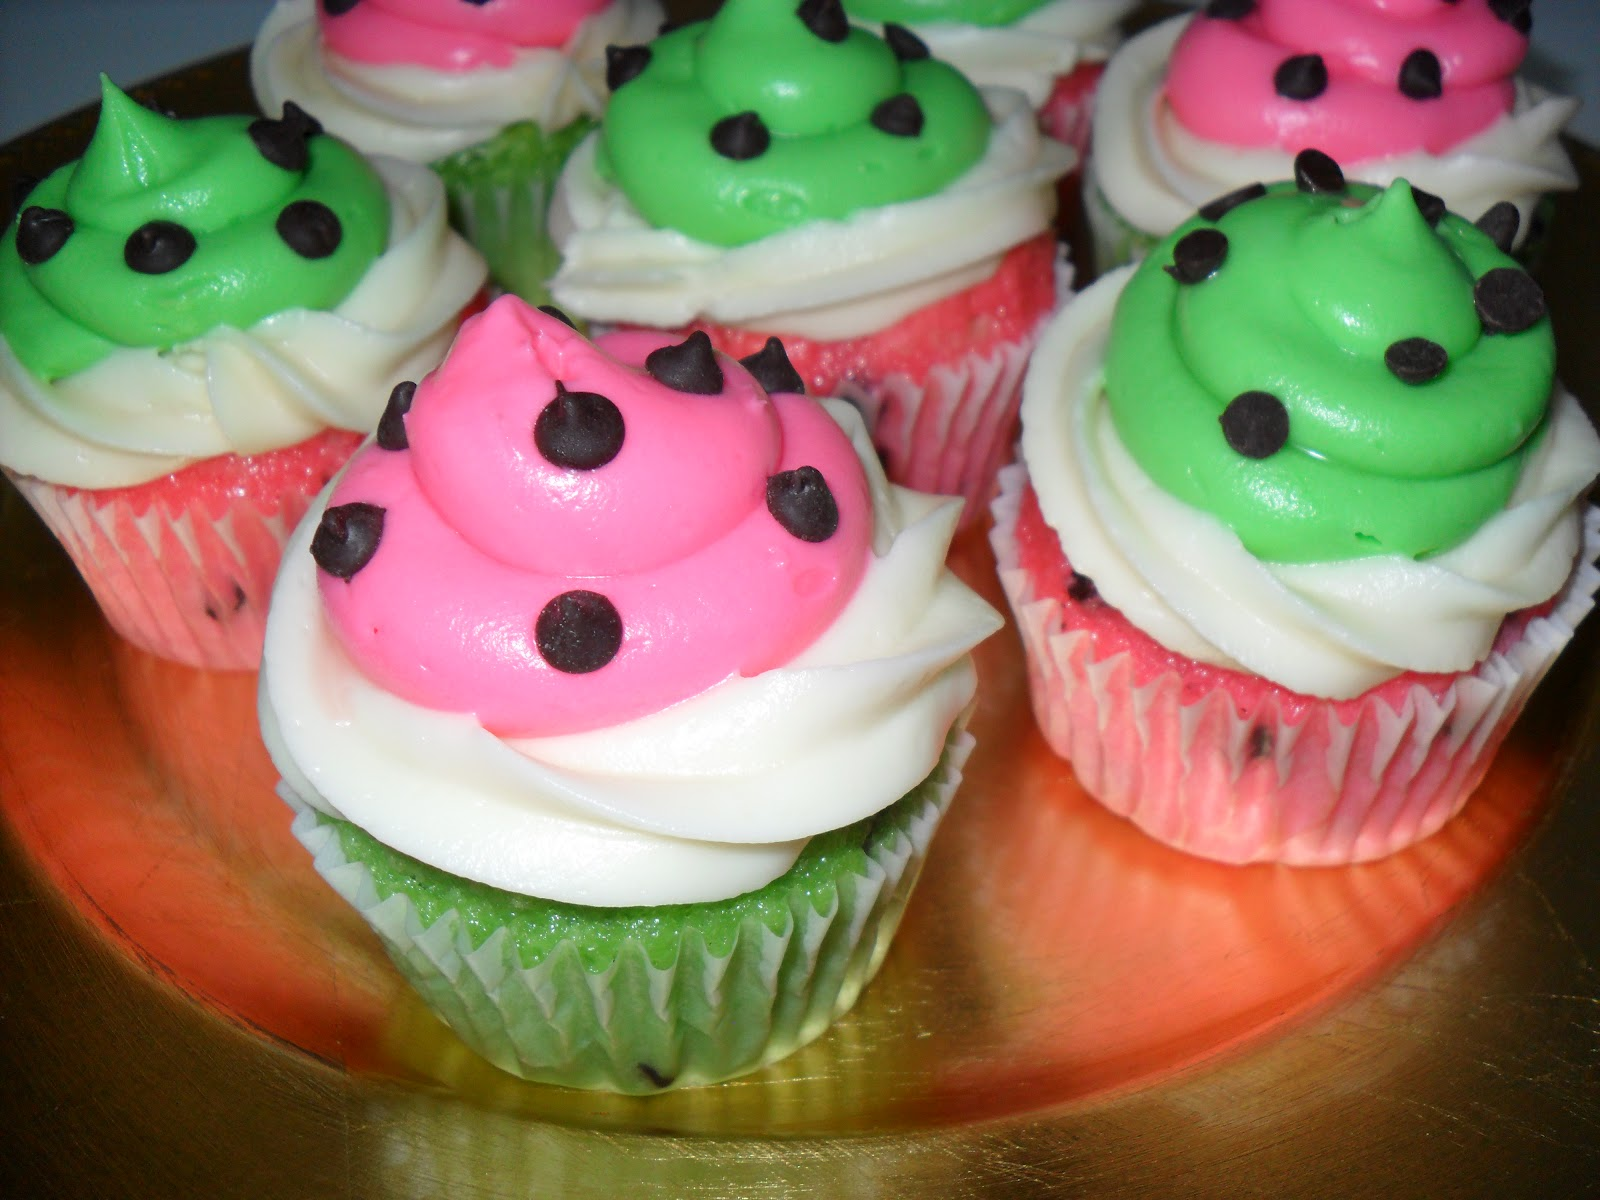 Watermelon Cupcakes - Attempt Two (This Time With Jelly) Recipes ...